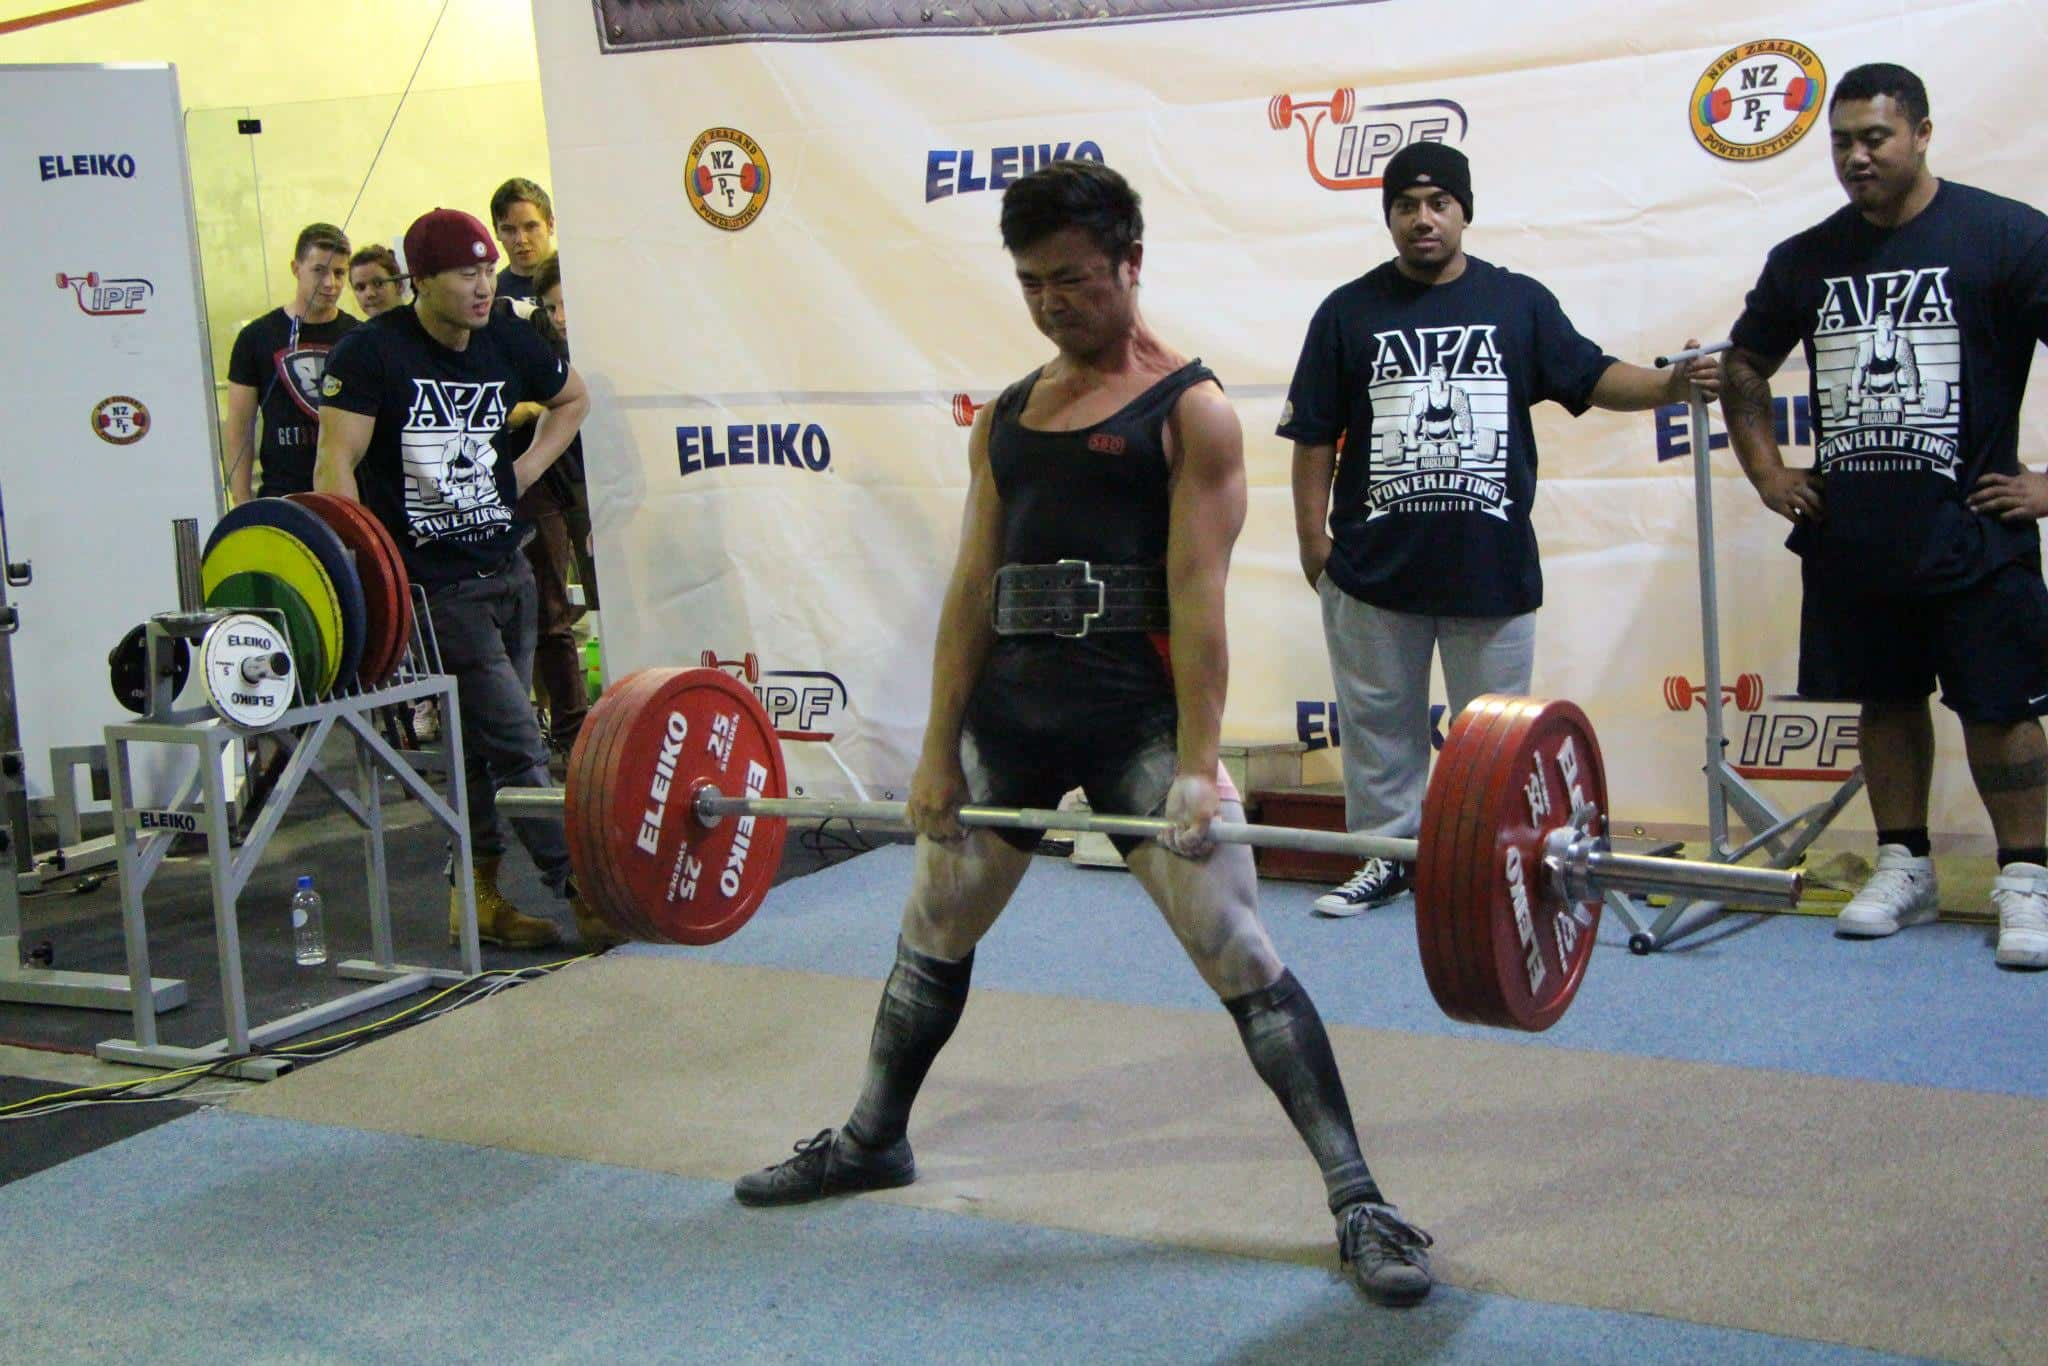 Getstrength Powerlifting Team : 11gold, 3 silver and 6 bronze medals